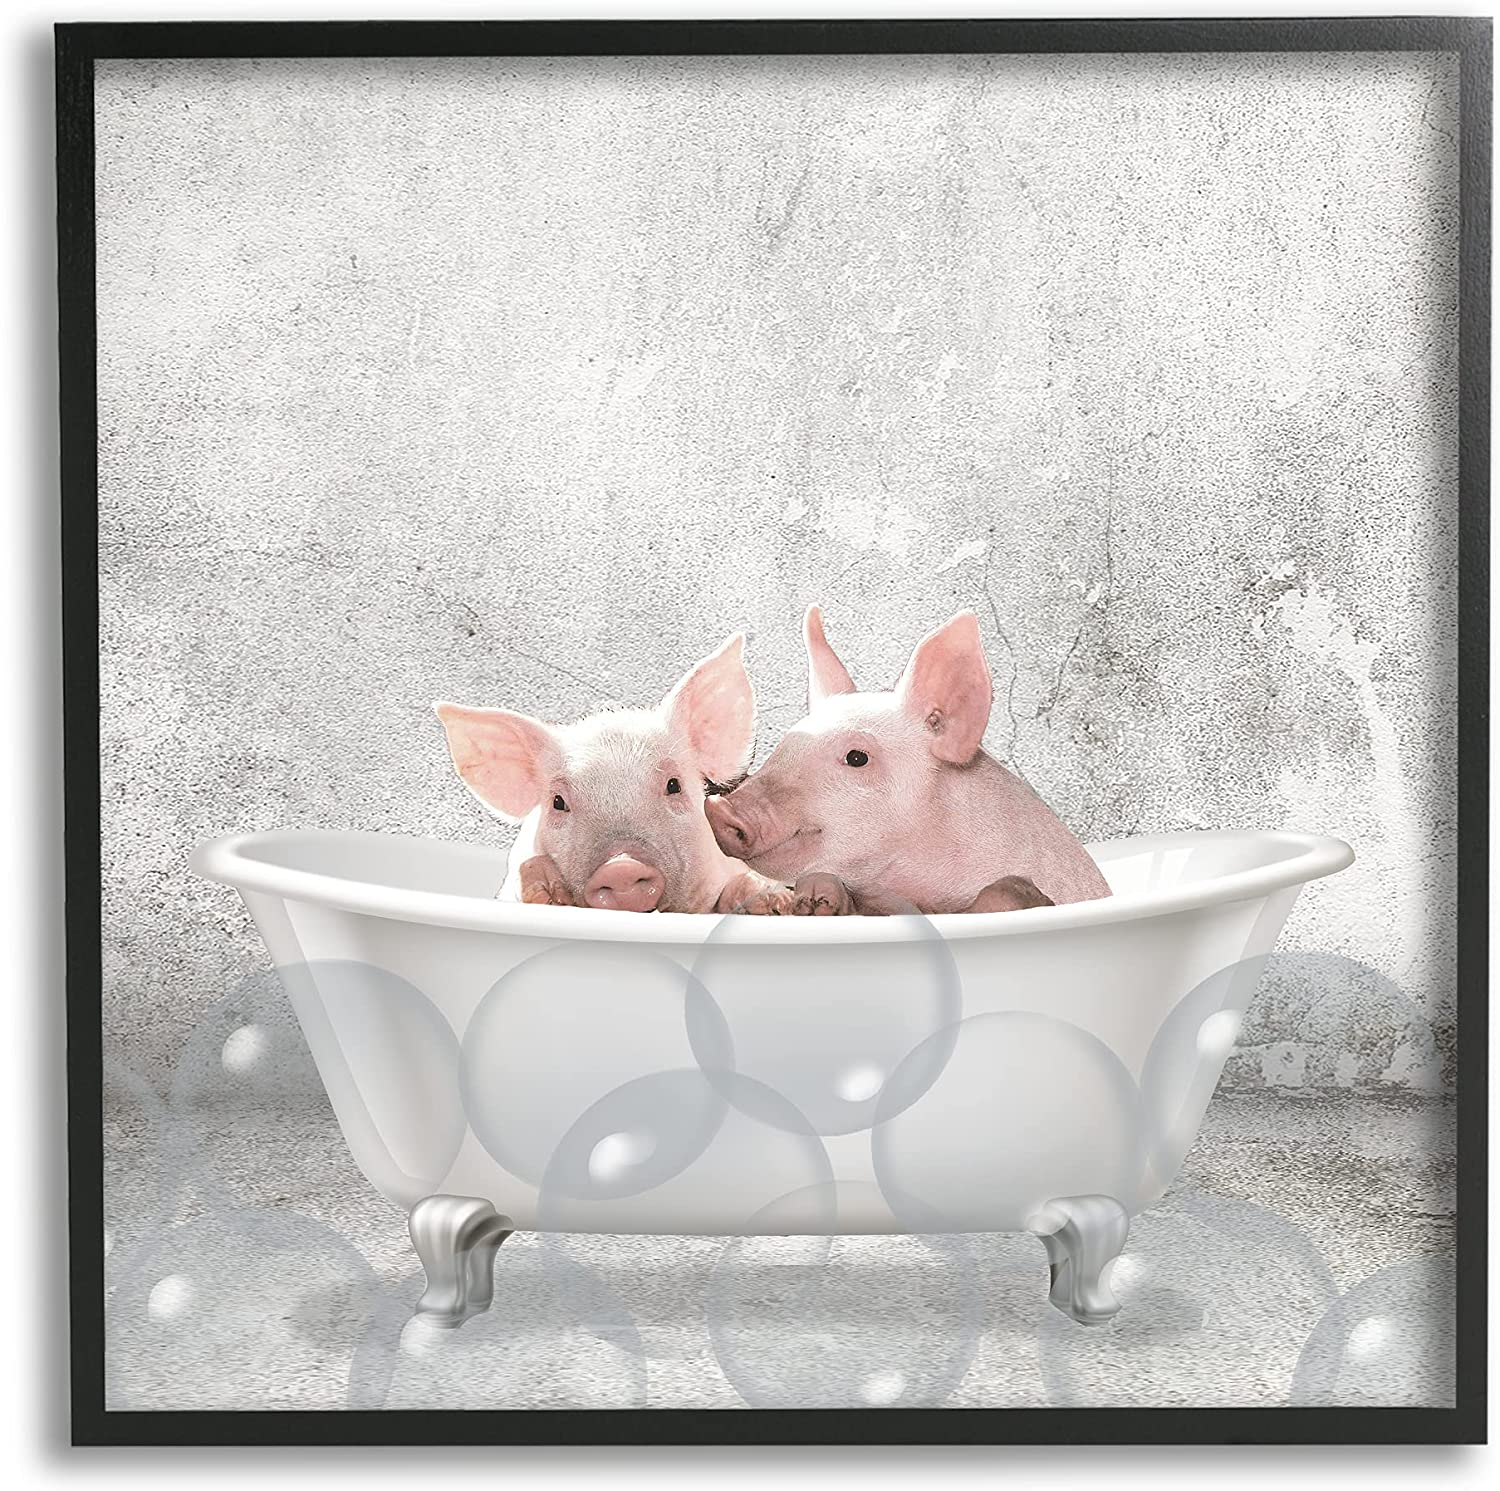 Grey 17 x 30 Stupell Industries Baby Piglets Bath Time Cute Animal Design by Kimberly Allen Black Framed Wall Art